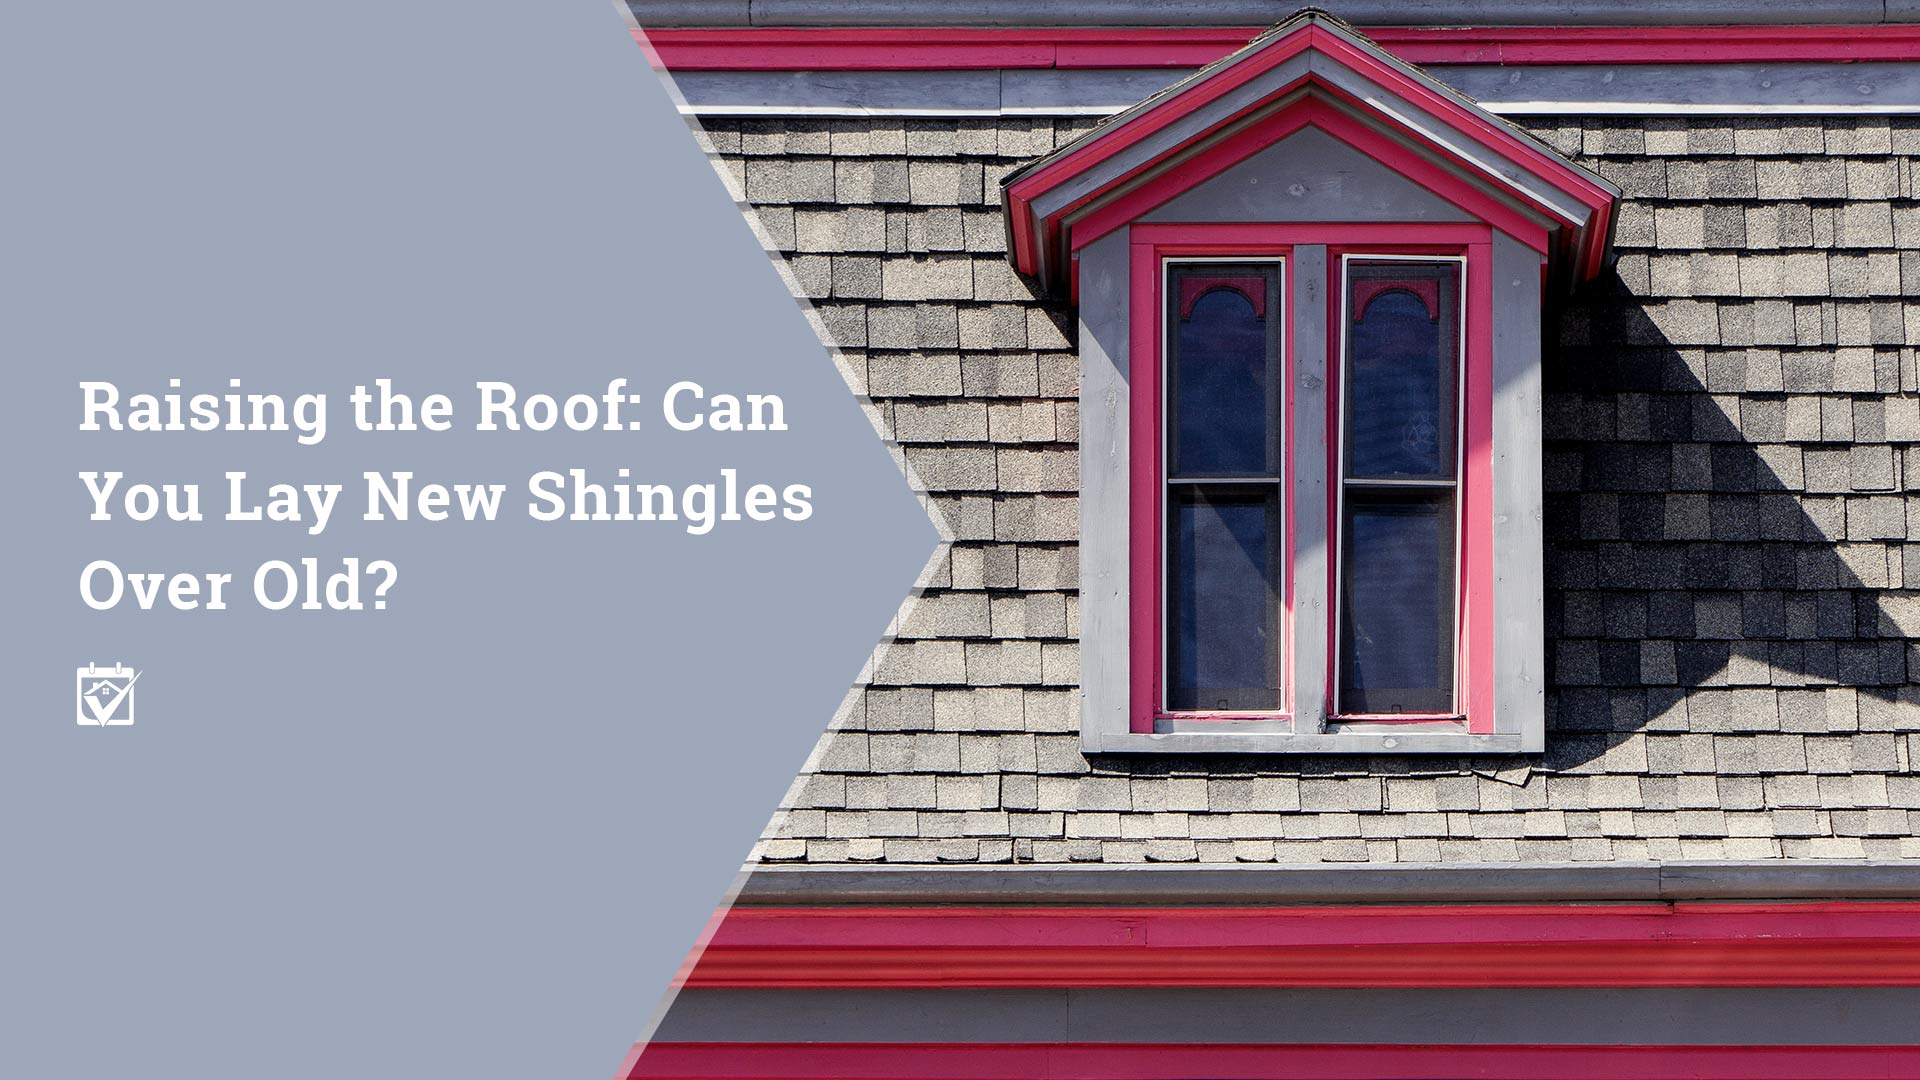 Raising your Roof: Can You Lay New Shingles Over Old? Can You? on house elevations, house lifting, house drawing, house building, house construction, house railing, house removal, house movers, house repair, house leveling, house facing, house beams, house designing, house shoring, house development, house history, house raise rs new jersey, house raise rs new egypt,